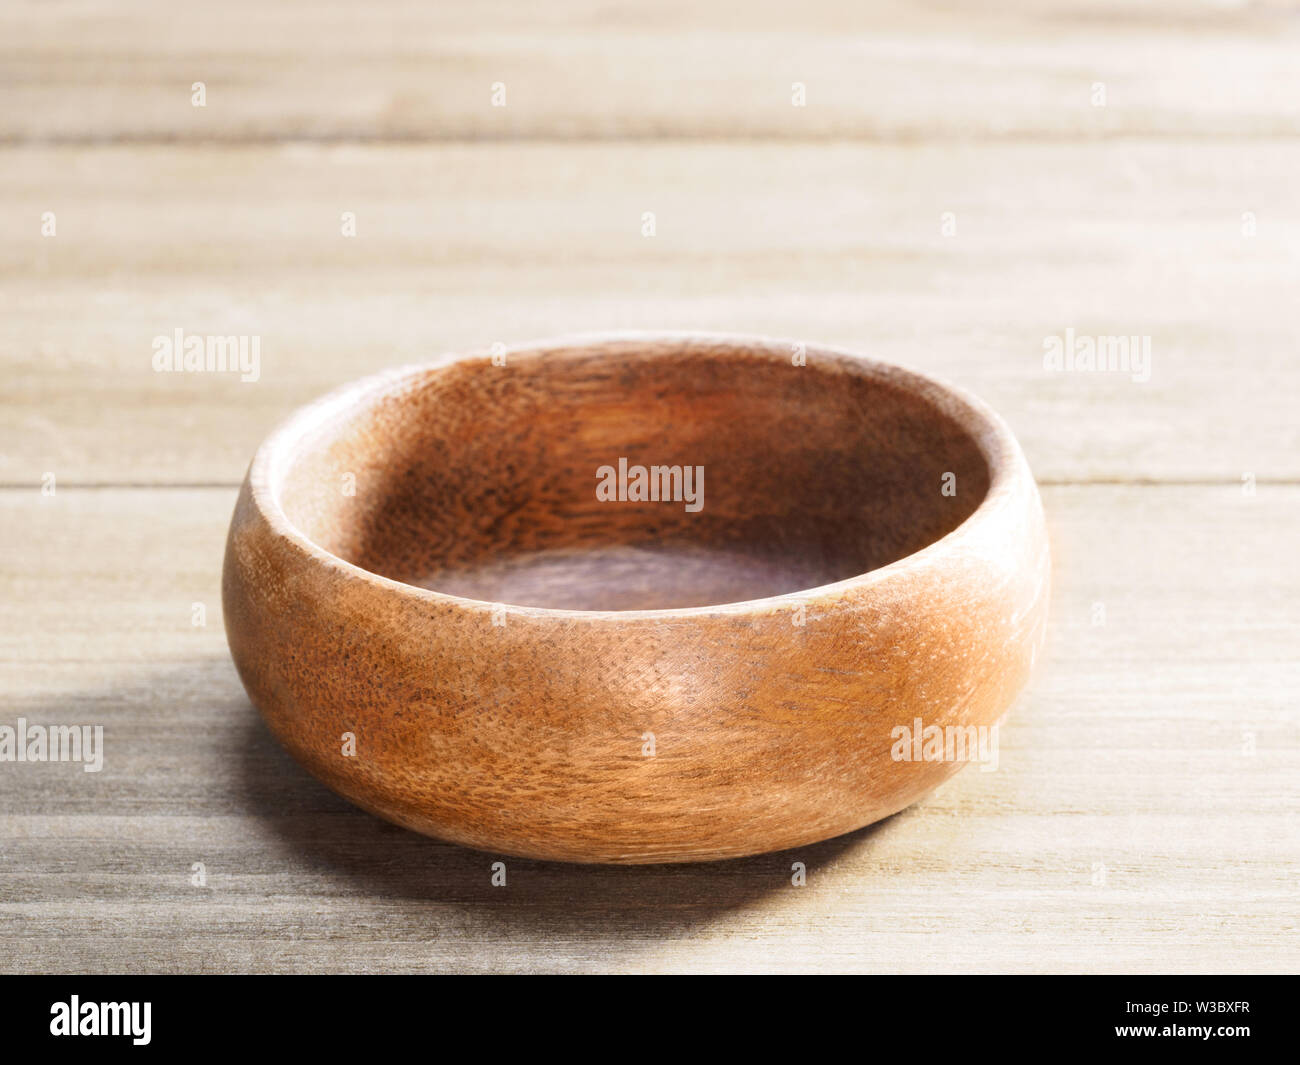 Wooden cup for cosmetic products on brown wooden background - Stock Image